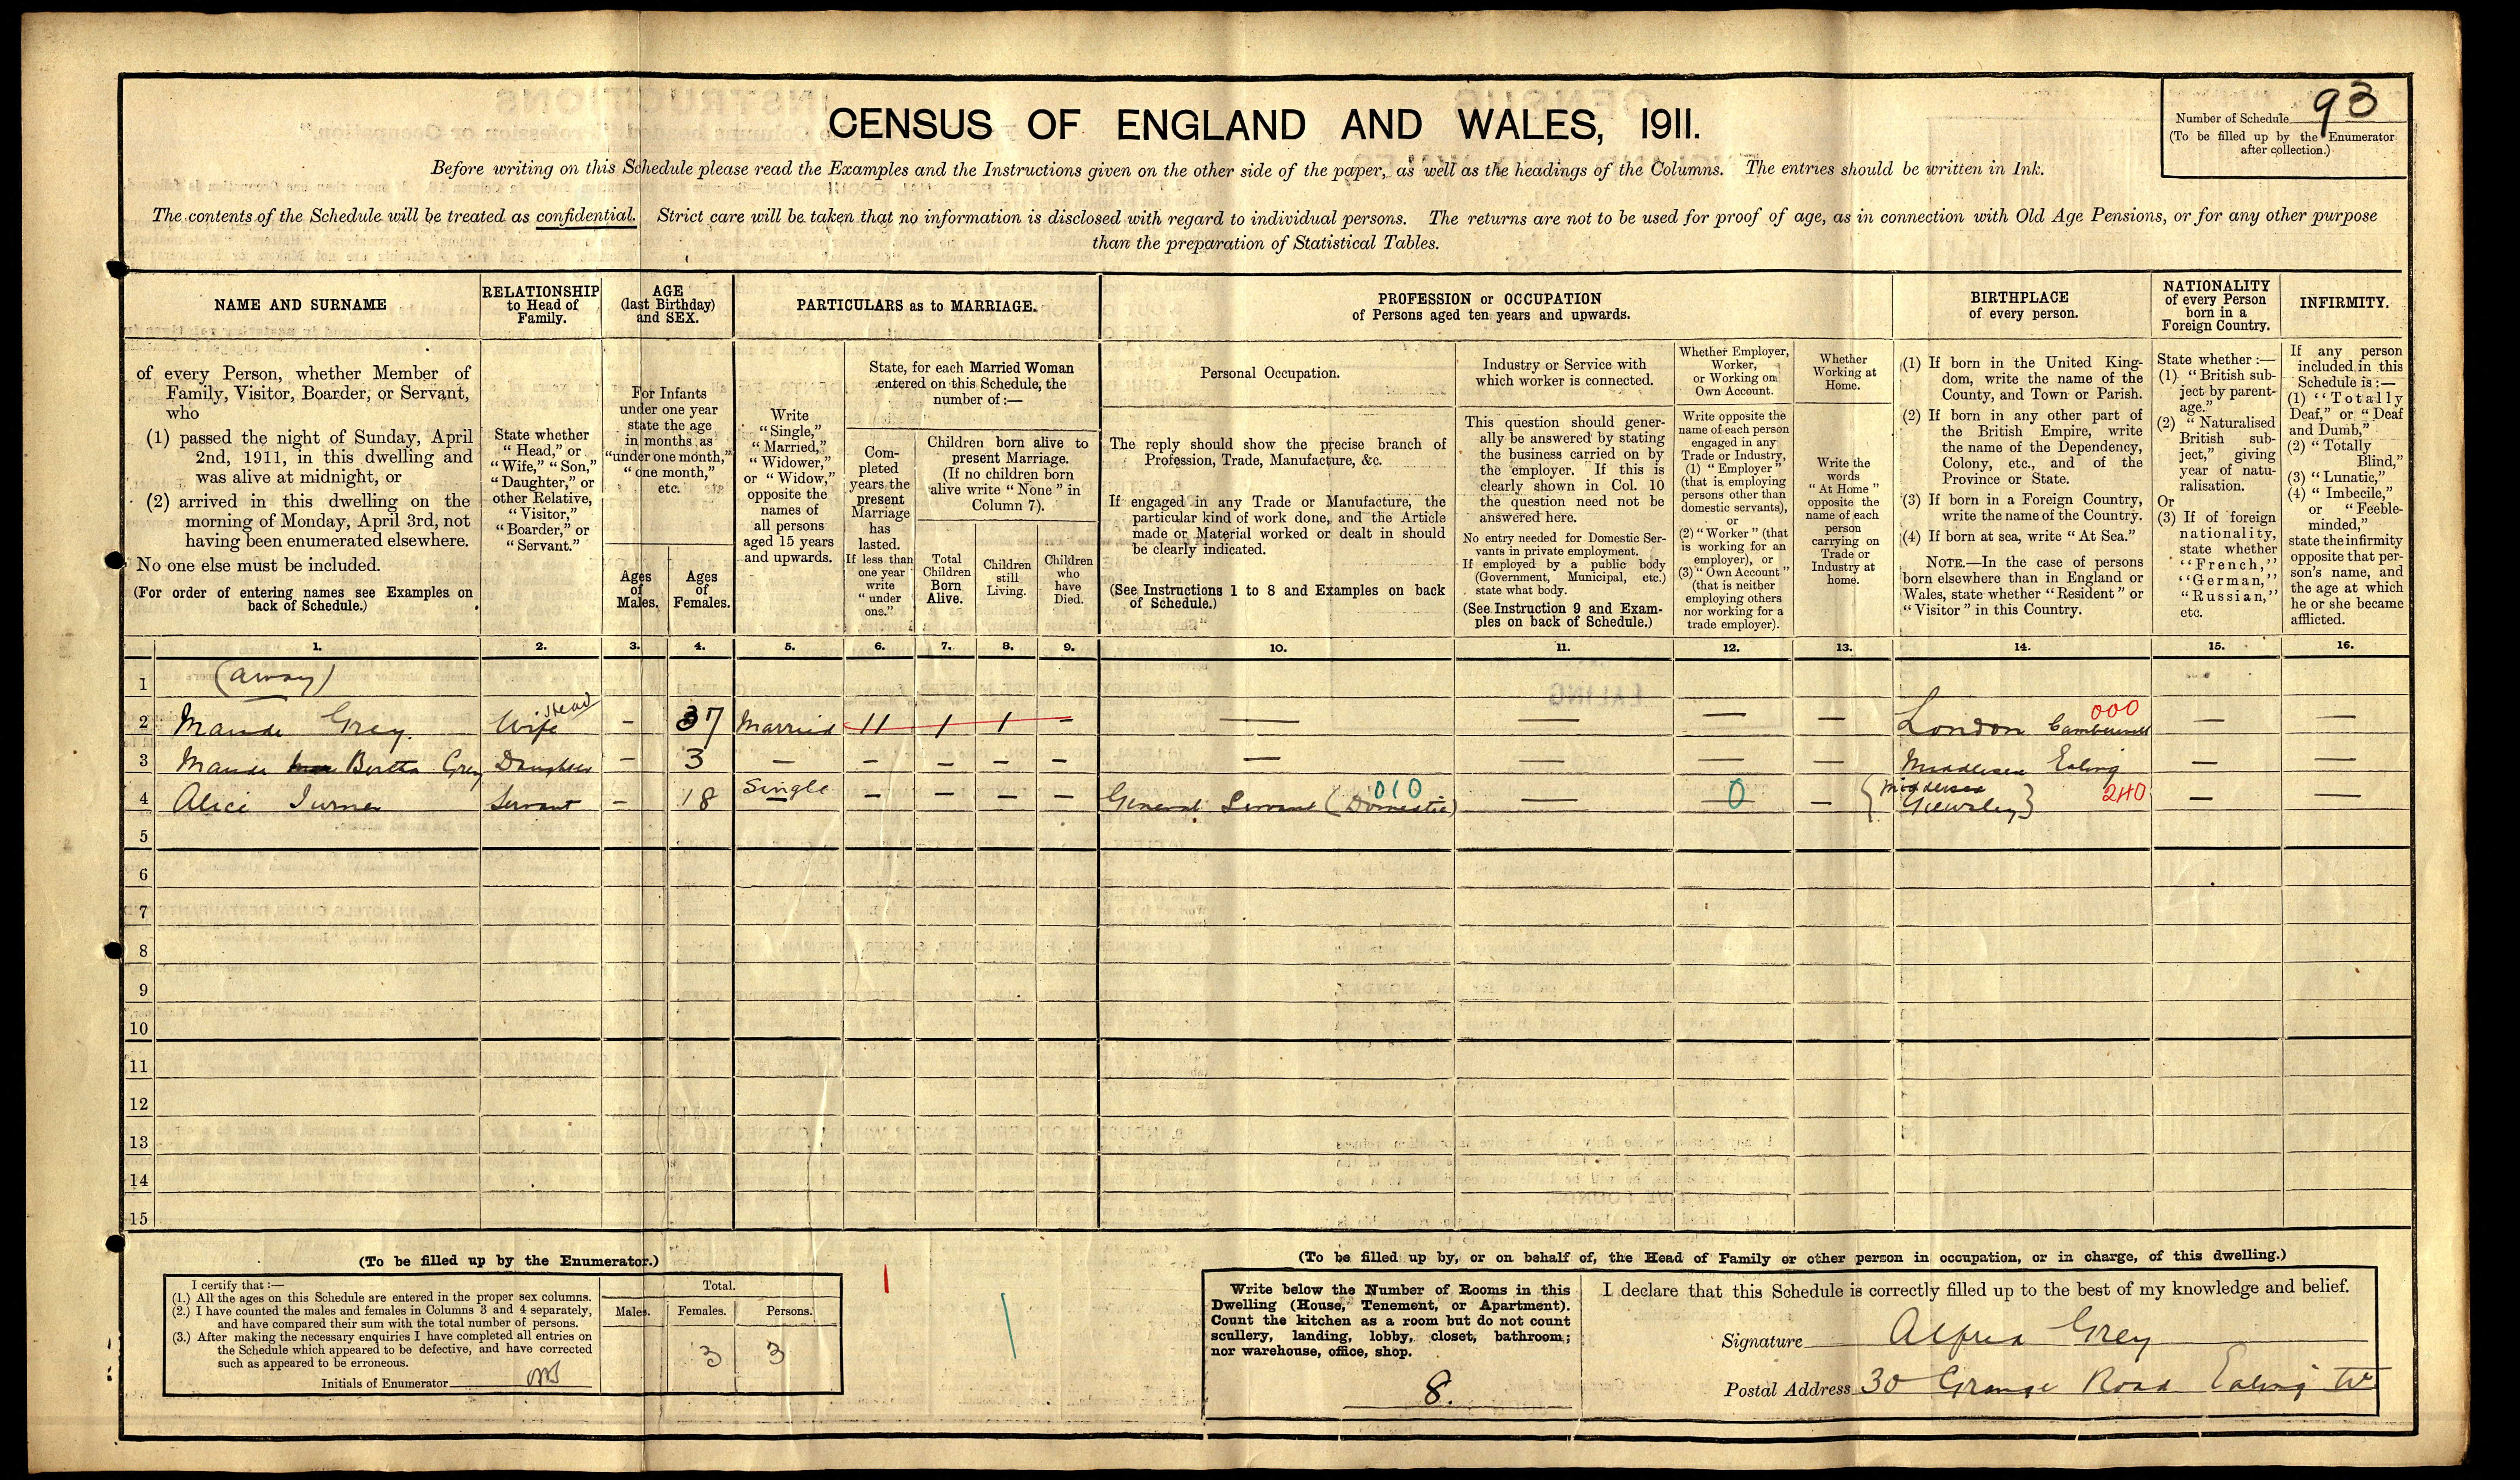 1911 England Census Record for Alice Turner